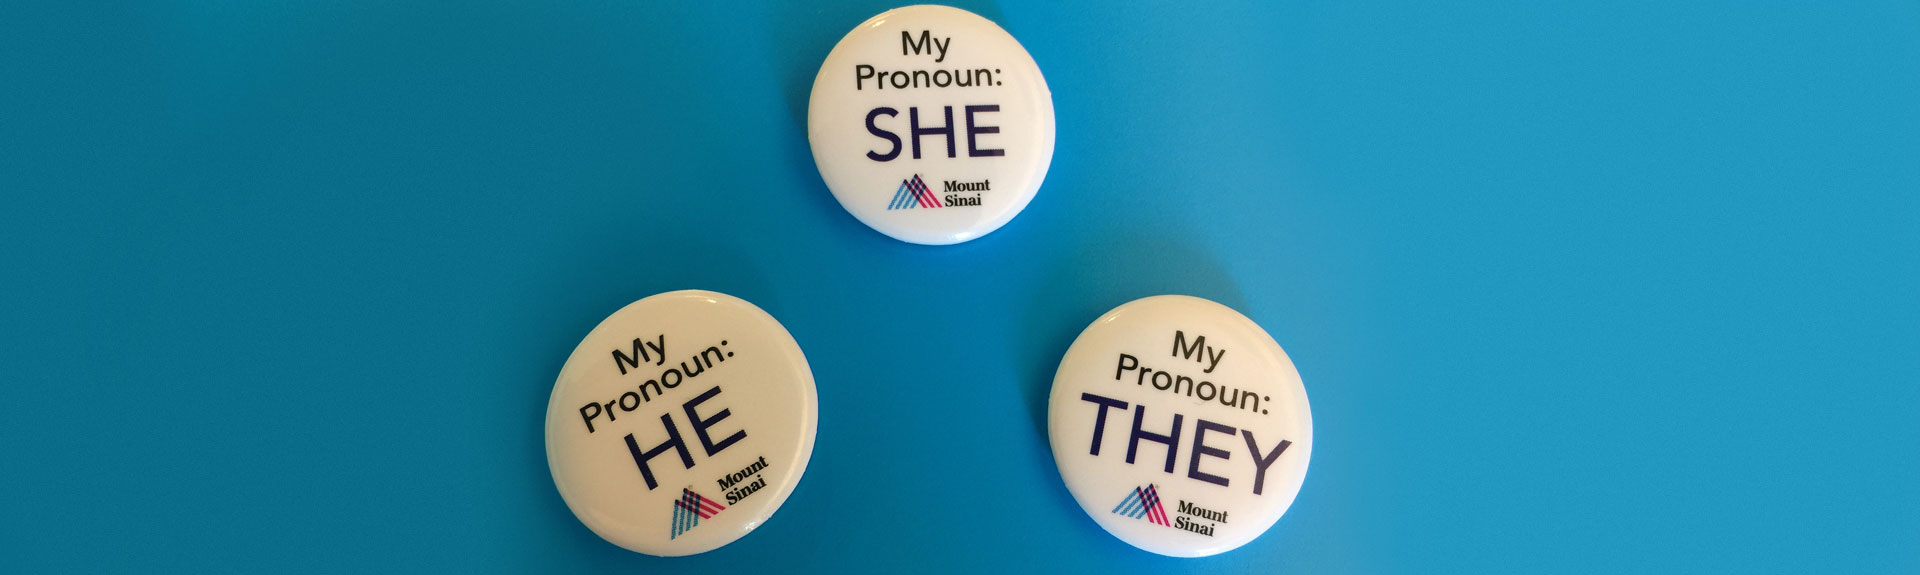 Buttons with She, He, and They pronouns